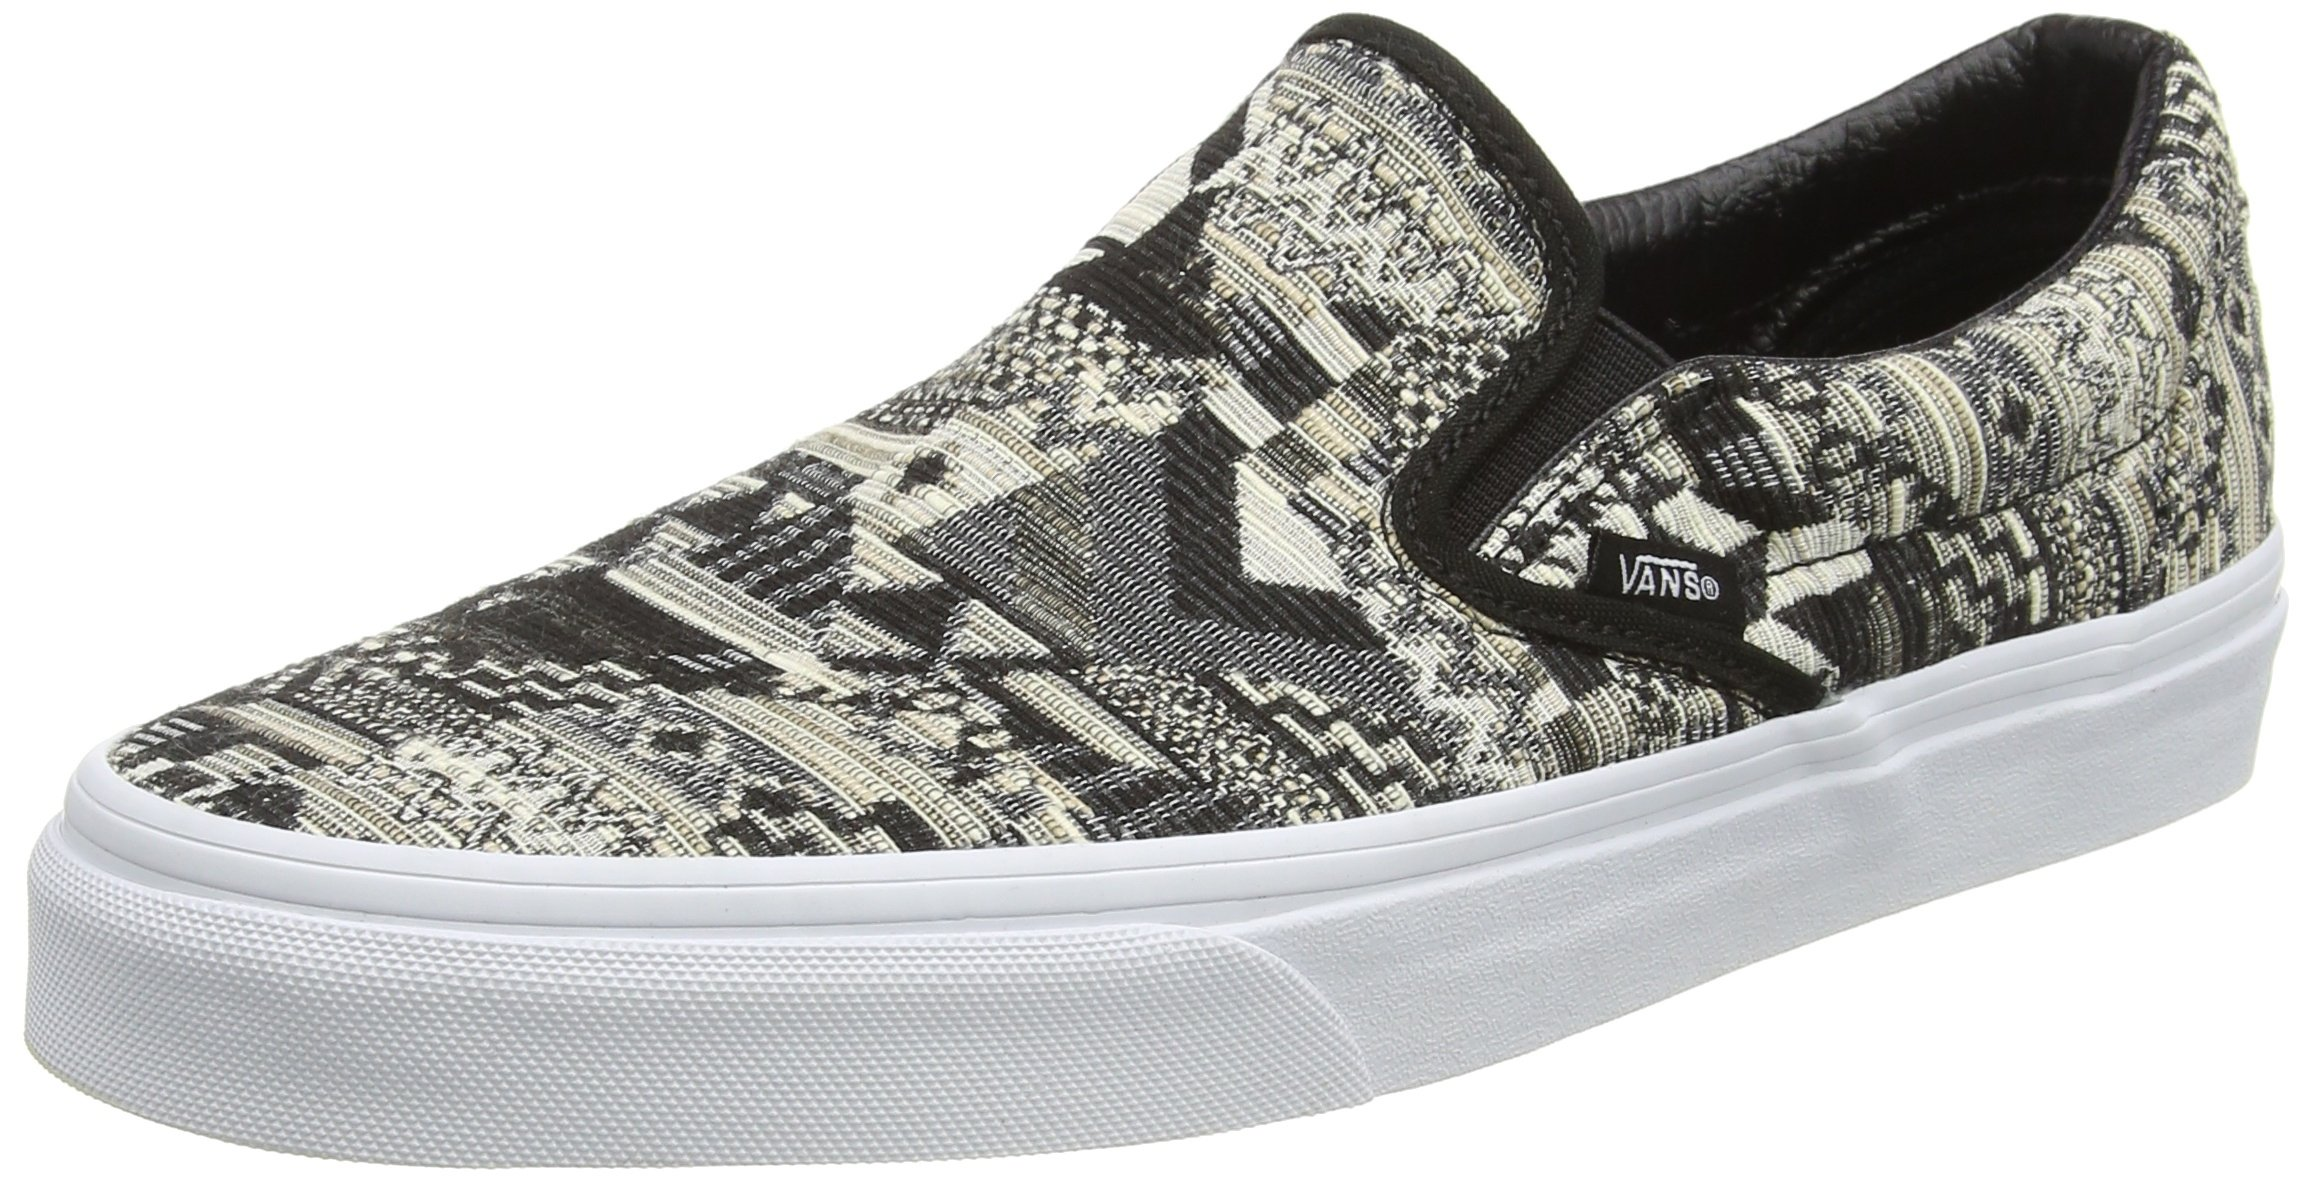 Vans Unisex Classic Slip-On (Italian Weave) White/Bla Skate Shoe 5 Men US/6.5 Women US